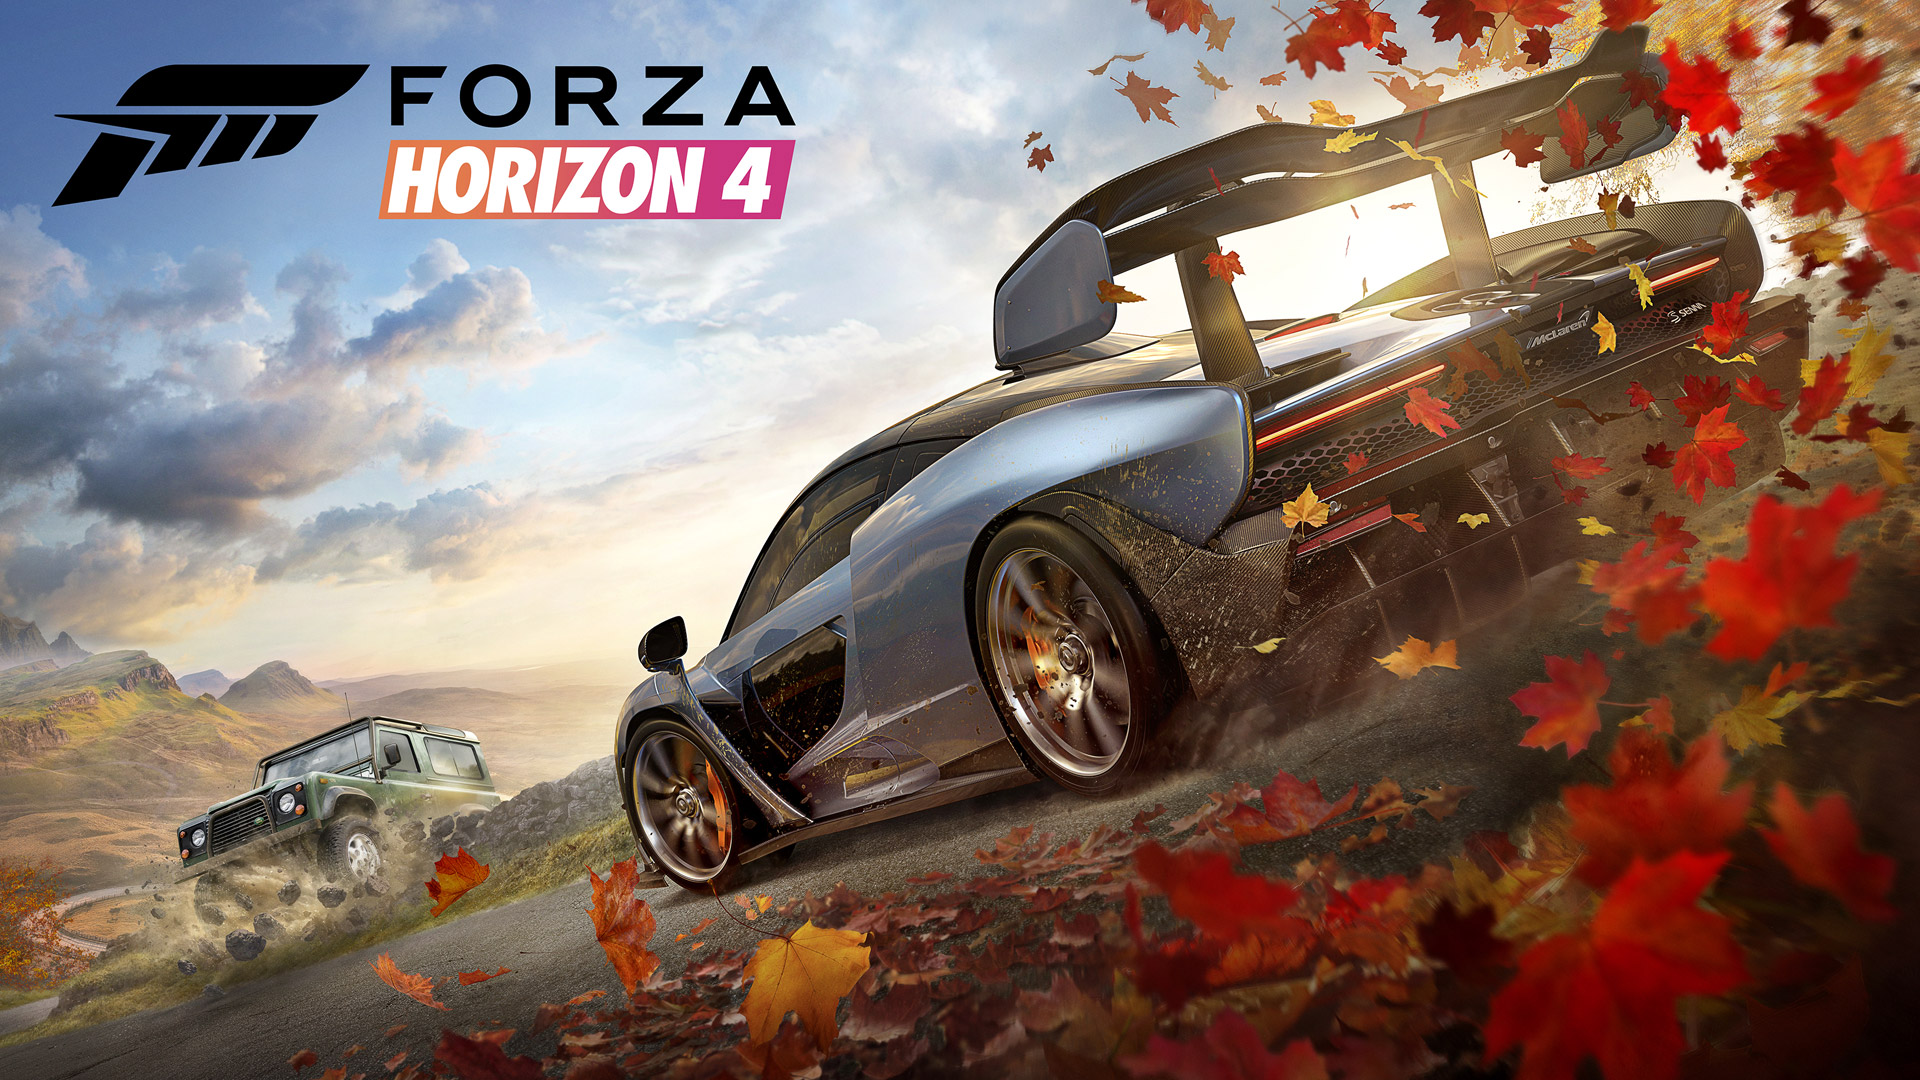 Free Forza Horizon 4 Wallpaper in 1920x1080